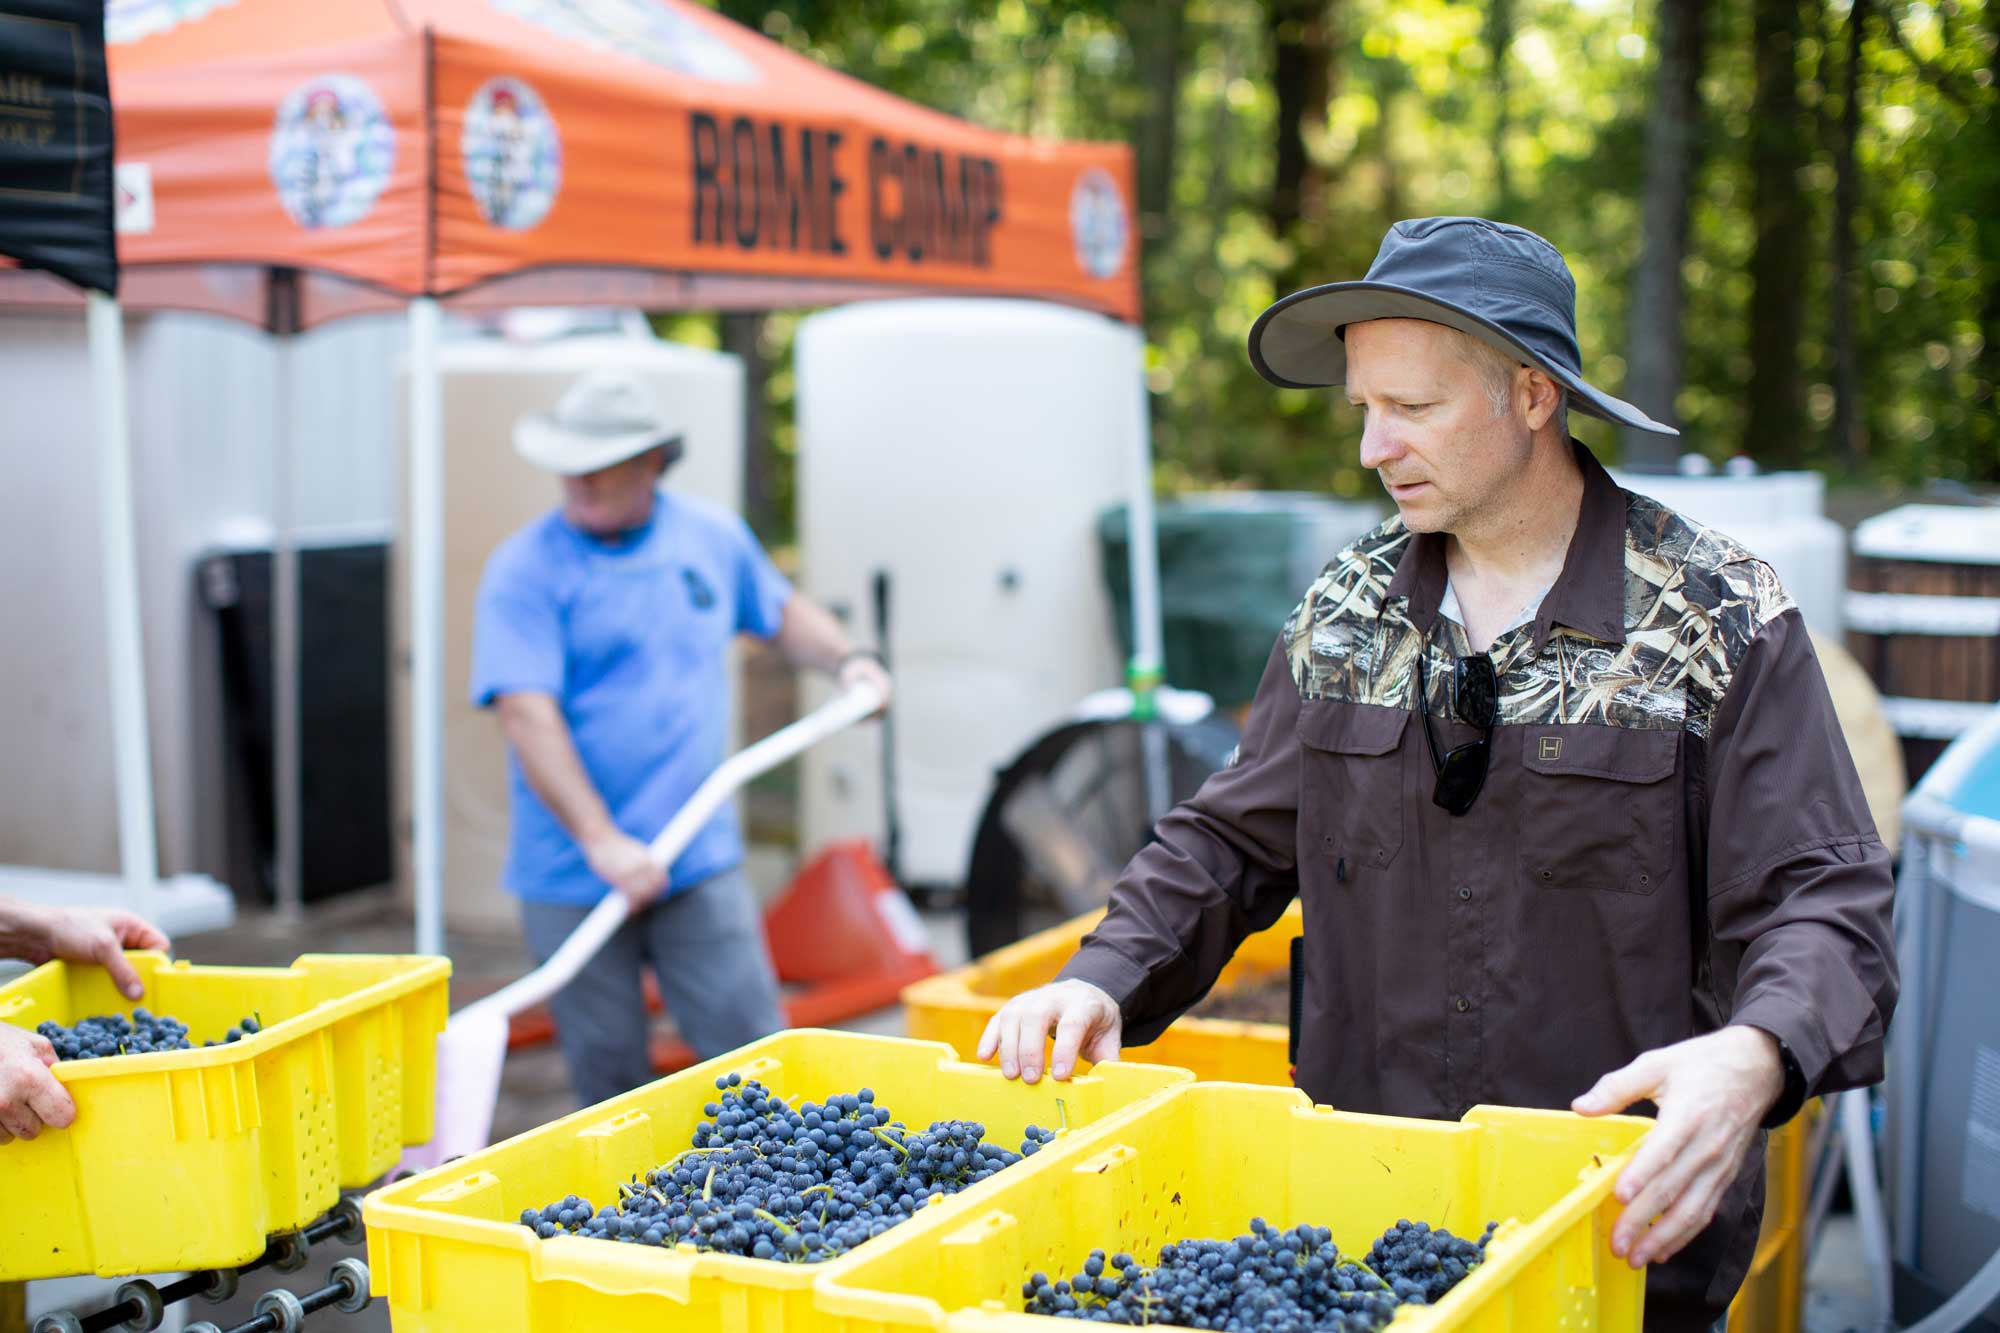 A man carries bins of grapes